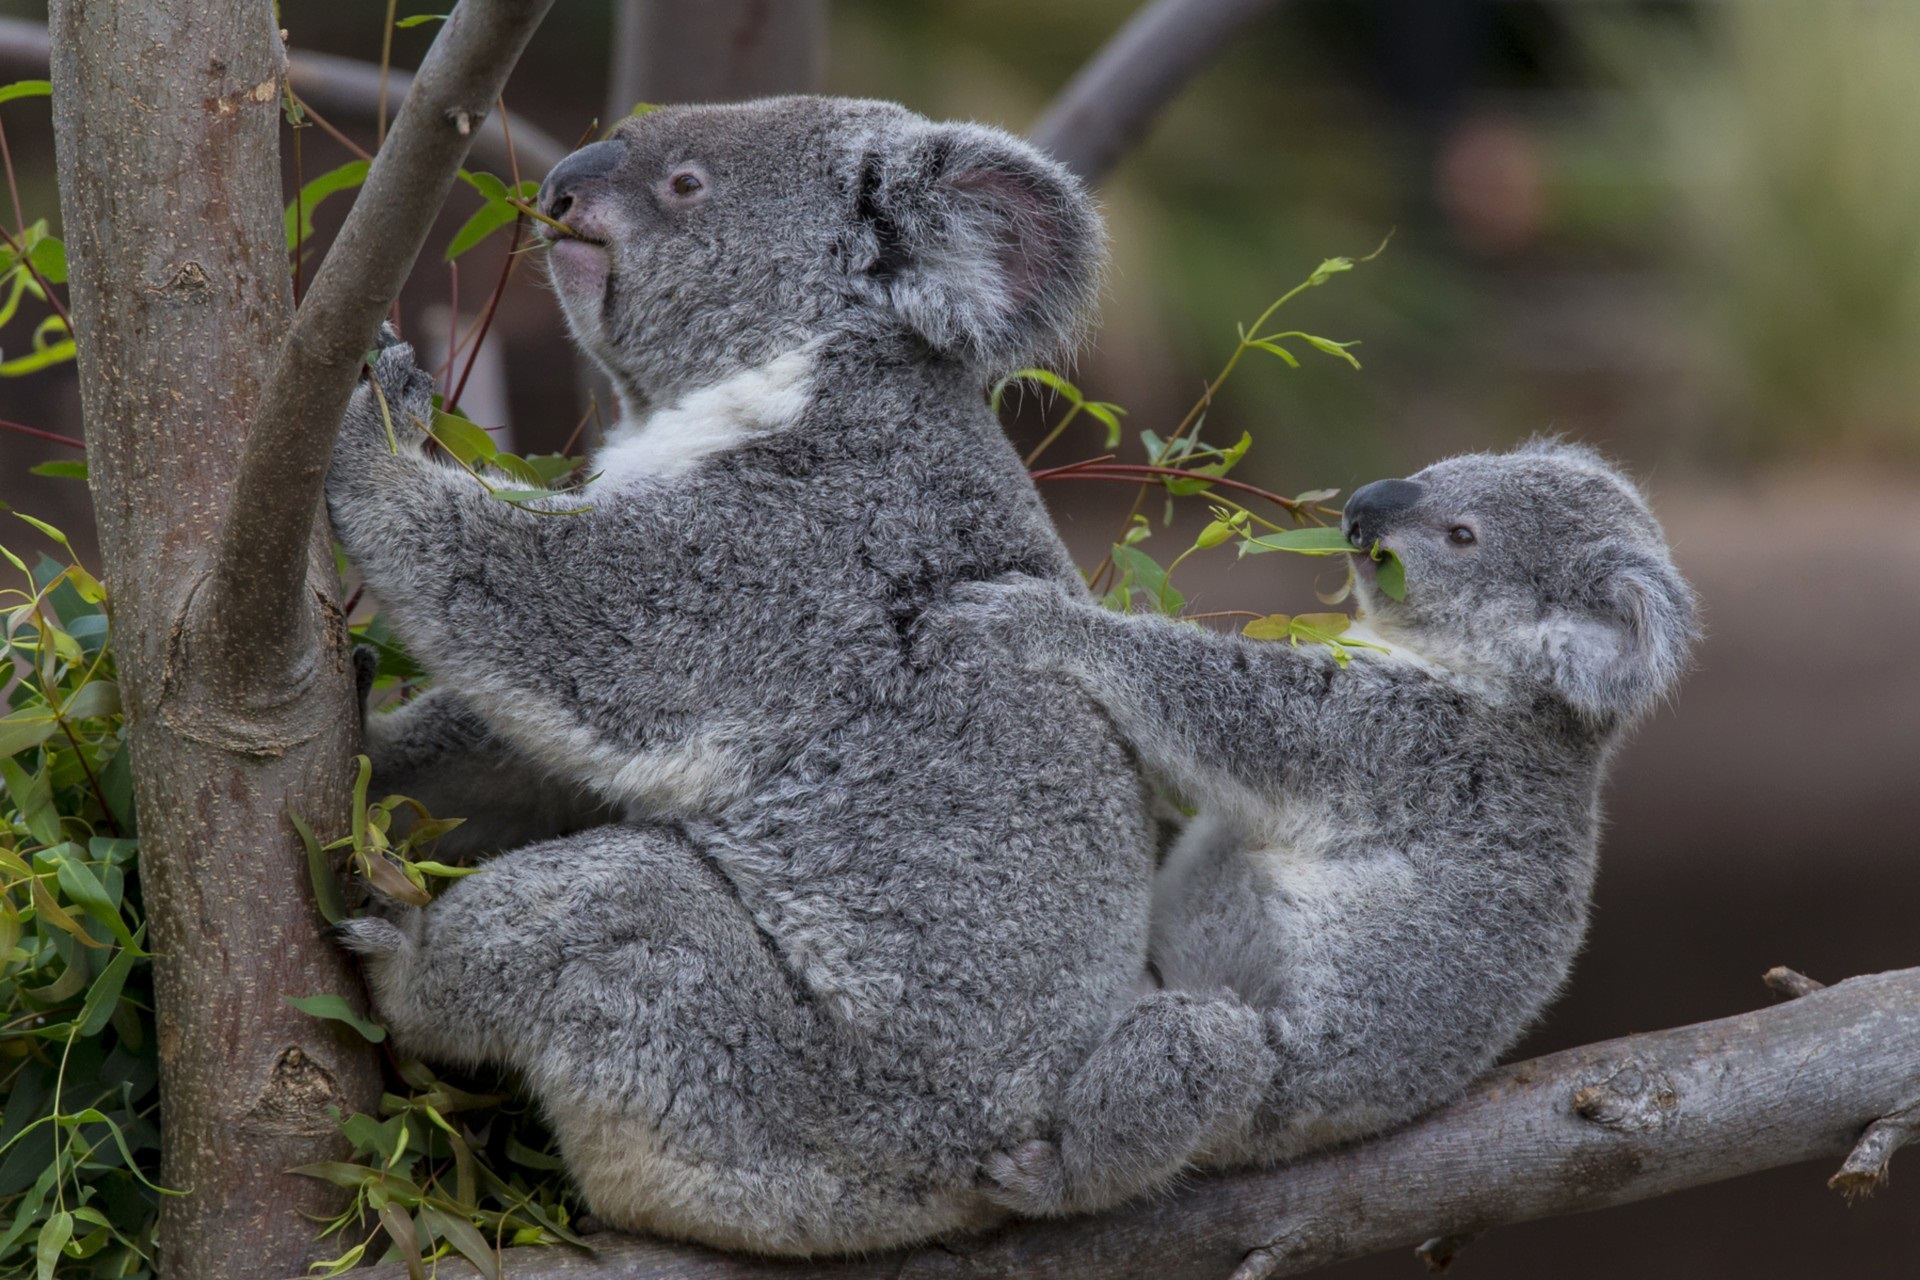 62048 download wallpaper Animals, Koalas, Wood, Young, Couple, Pair, Tree, Joey screensavers and pictures for free